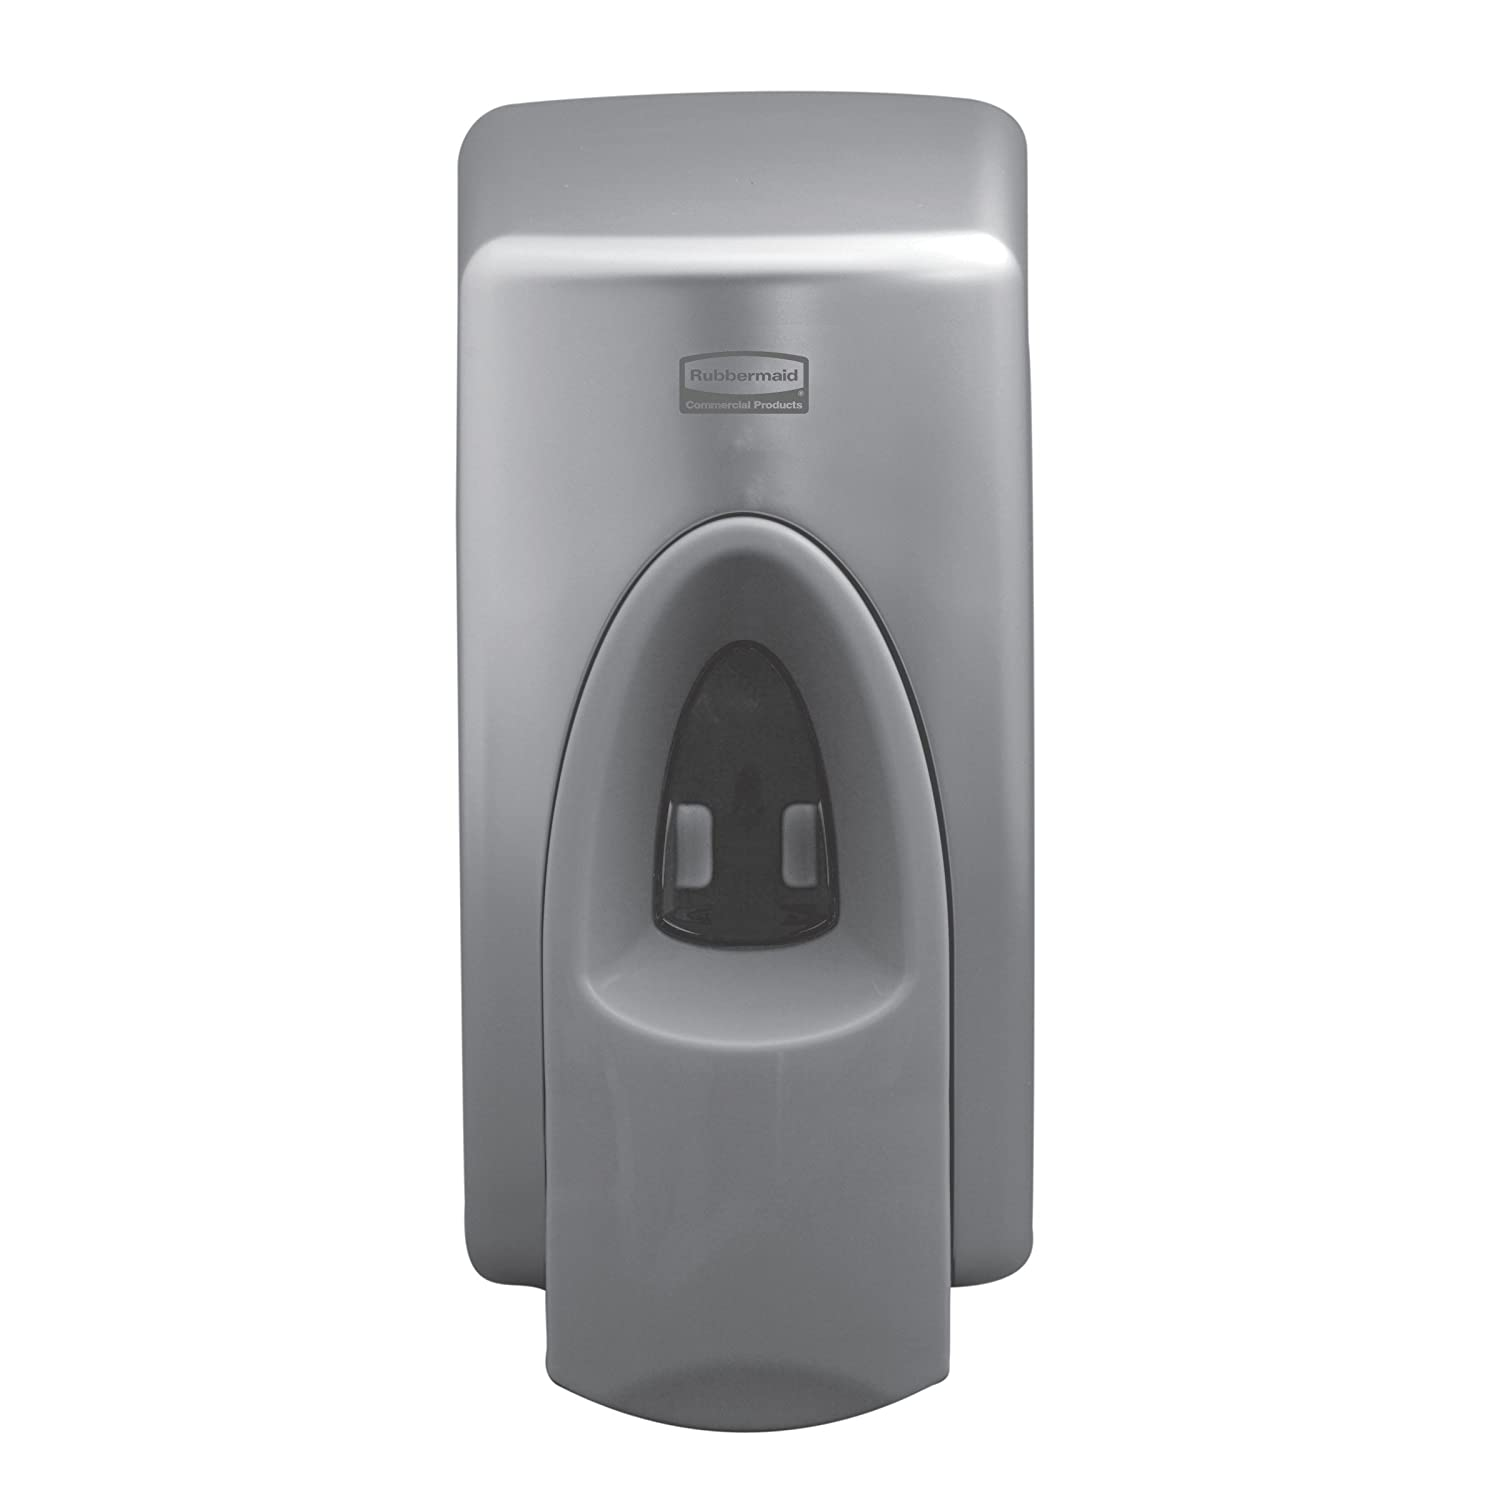 Rubbermaid Commercial FG750175 Wall Mount Manual Spray Skin Care Dispenser, Metallic, 400 mL Capacity, 4.3-inch Length x 3.7-inch Width x 8.25-inch Height